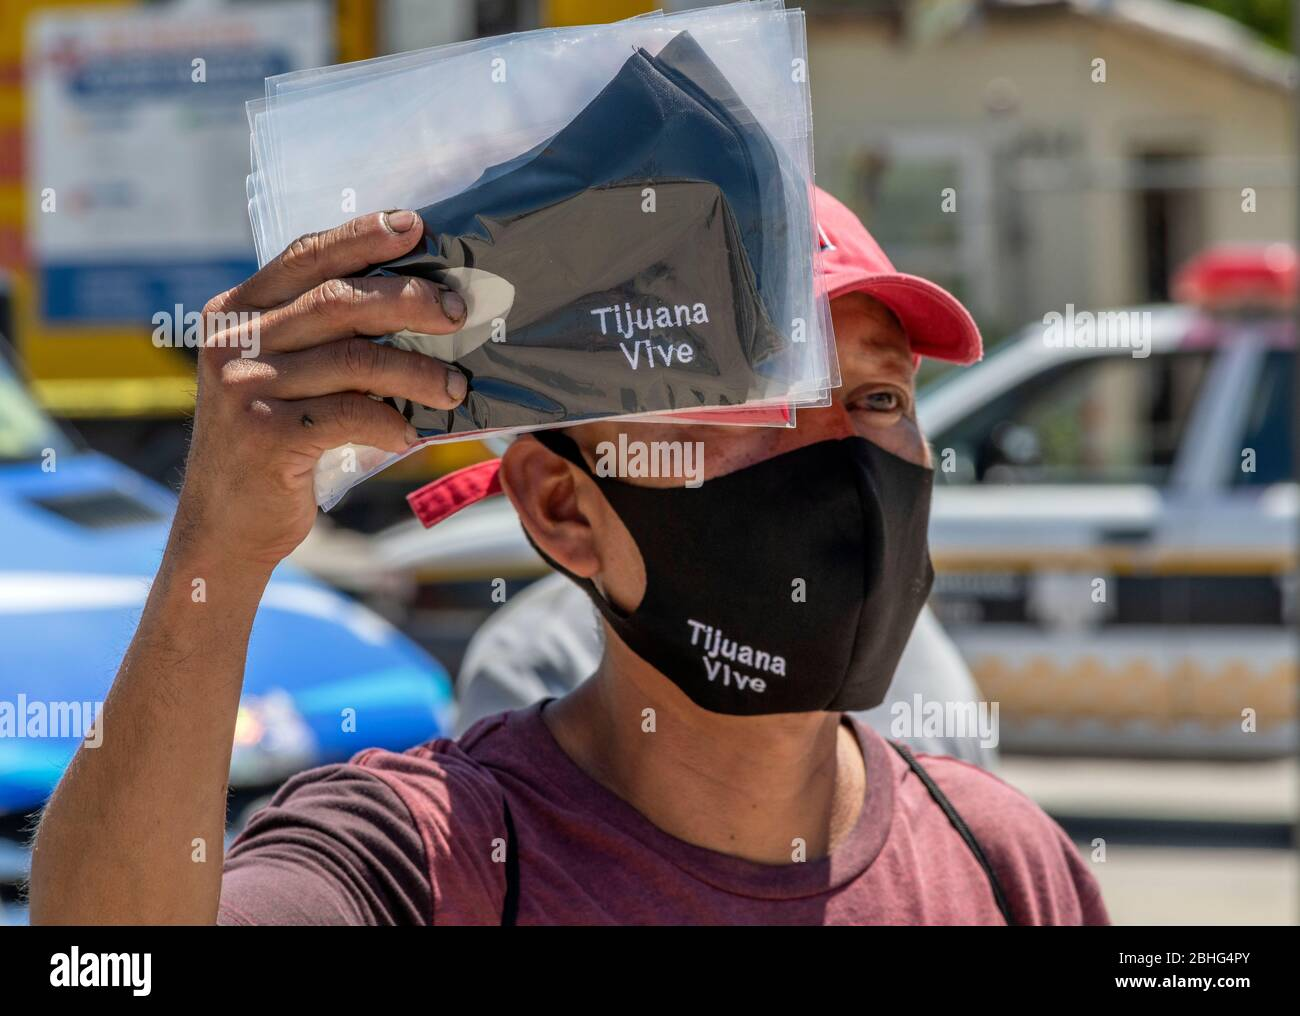 Tijuana, Baja California, Mexico. 25th Apr, 2020. A man in Tijuana, Mexico, sells face masks near the San Ysidro US/Mexico border crossing. Tijuana is experiencing a very large number of coronavirus cases that are straining local hospitals' ability to care for patients. Credit: David Barak/ZUMA Wire/Alamy Live News Stock Photo